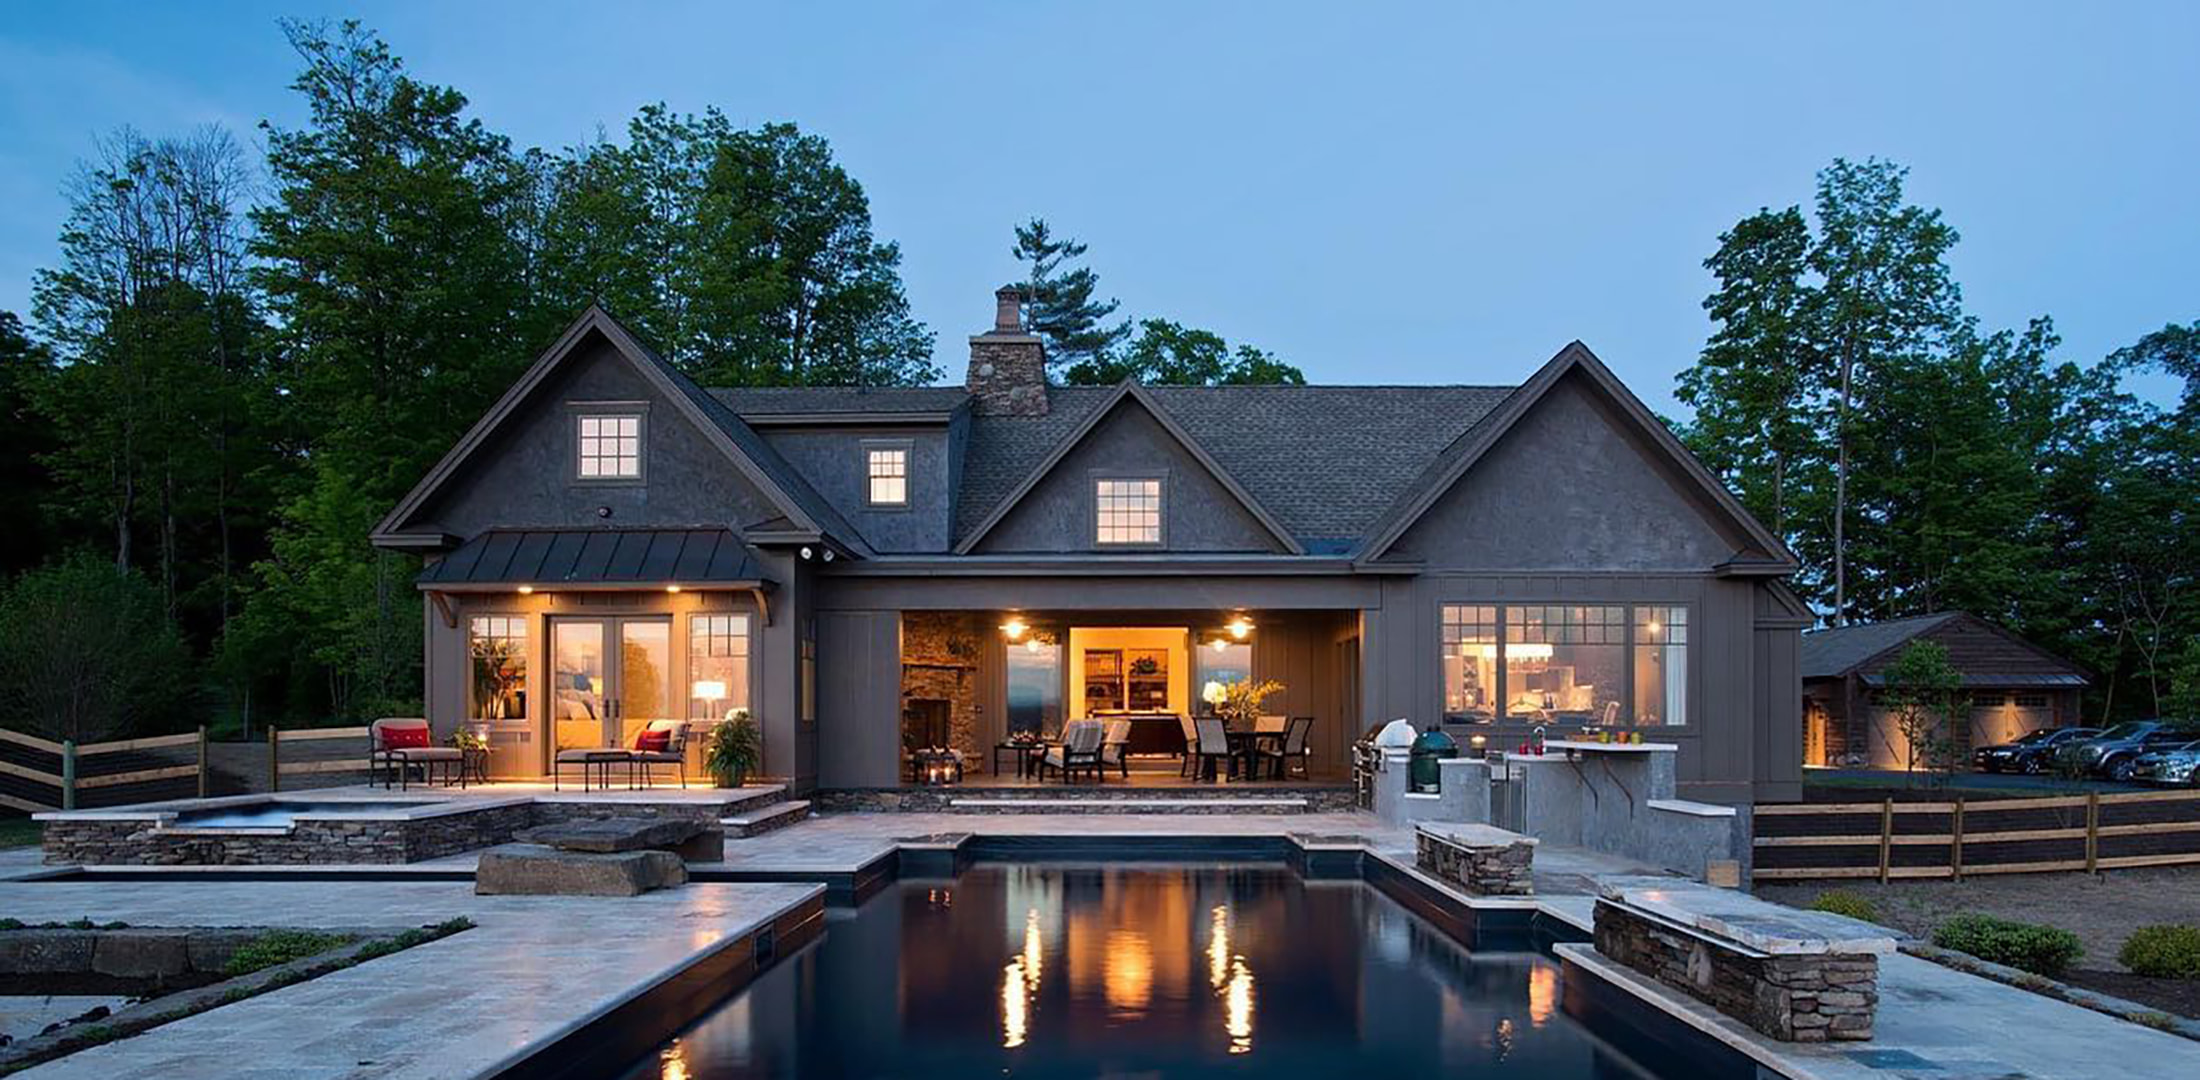 A farmhouse with gray windows and gray patio doors creates inviting exterior space by the pool.